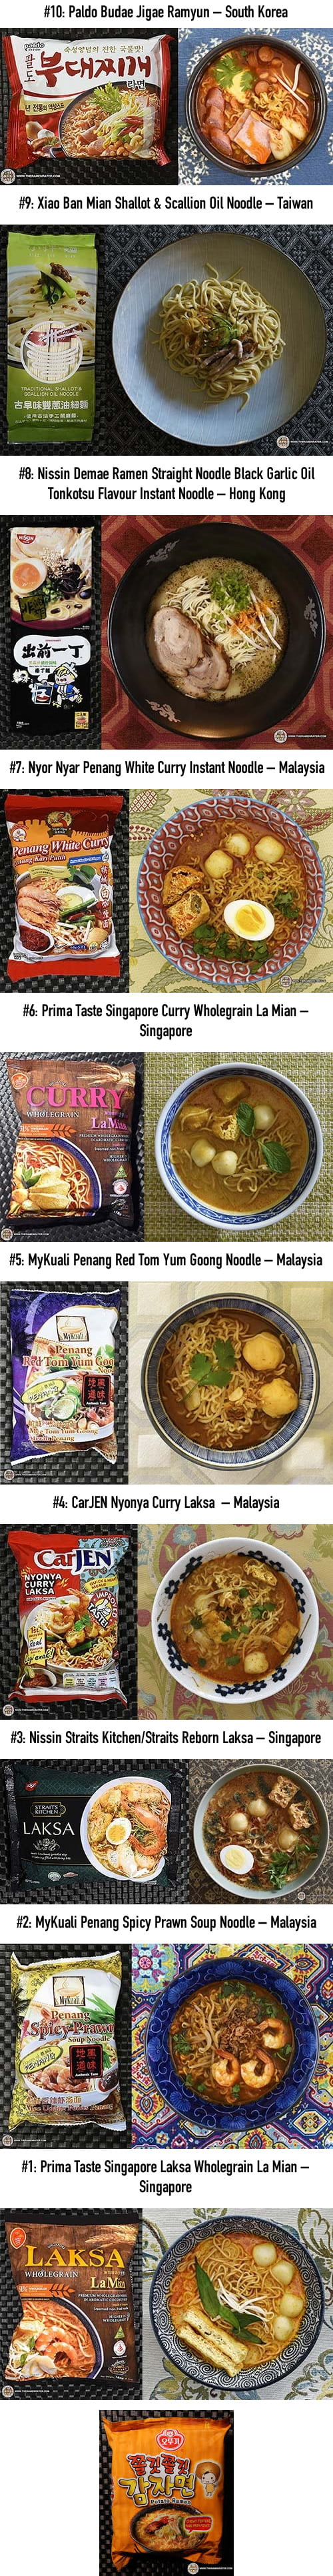 Top 10 Tastiest Instant Noodles That Make You Drool - 2017 Edition